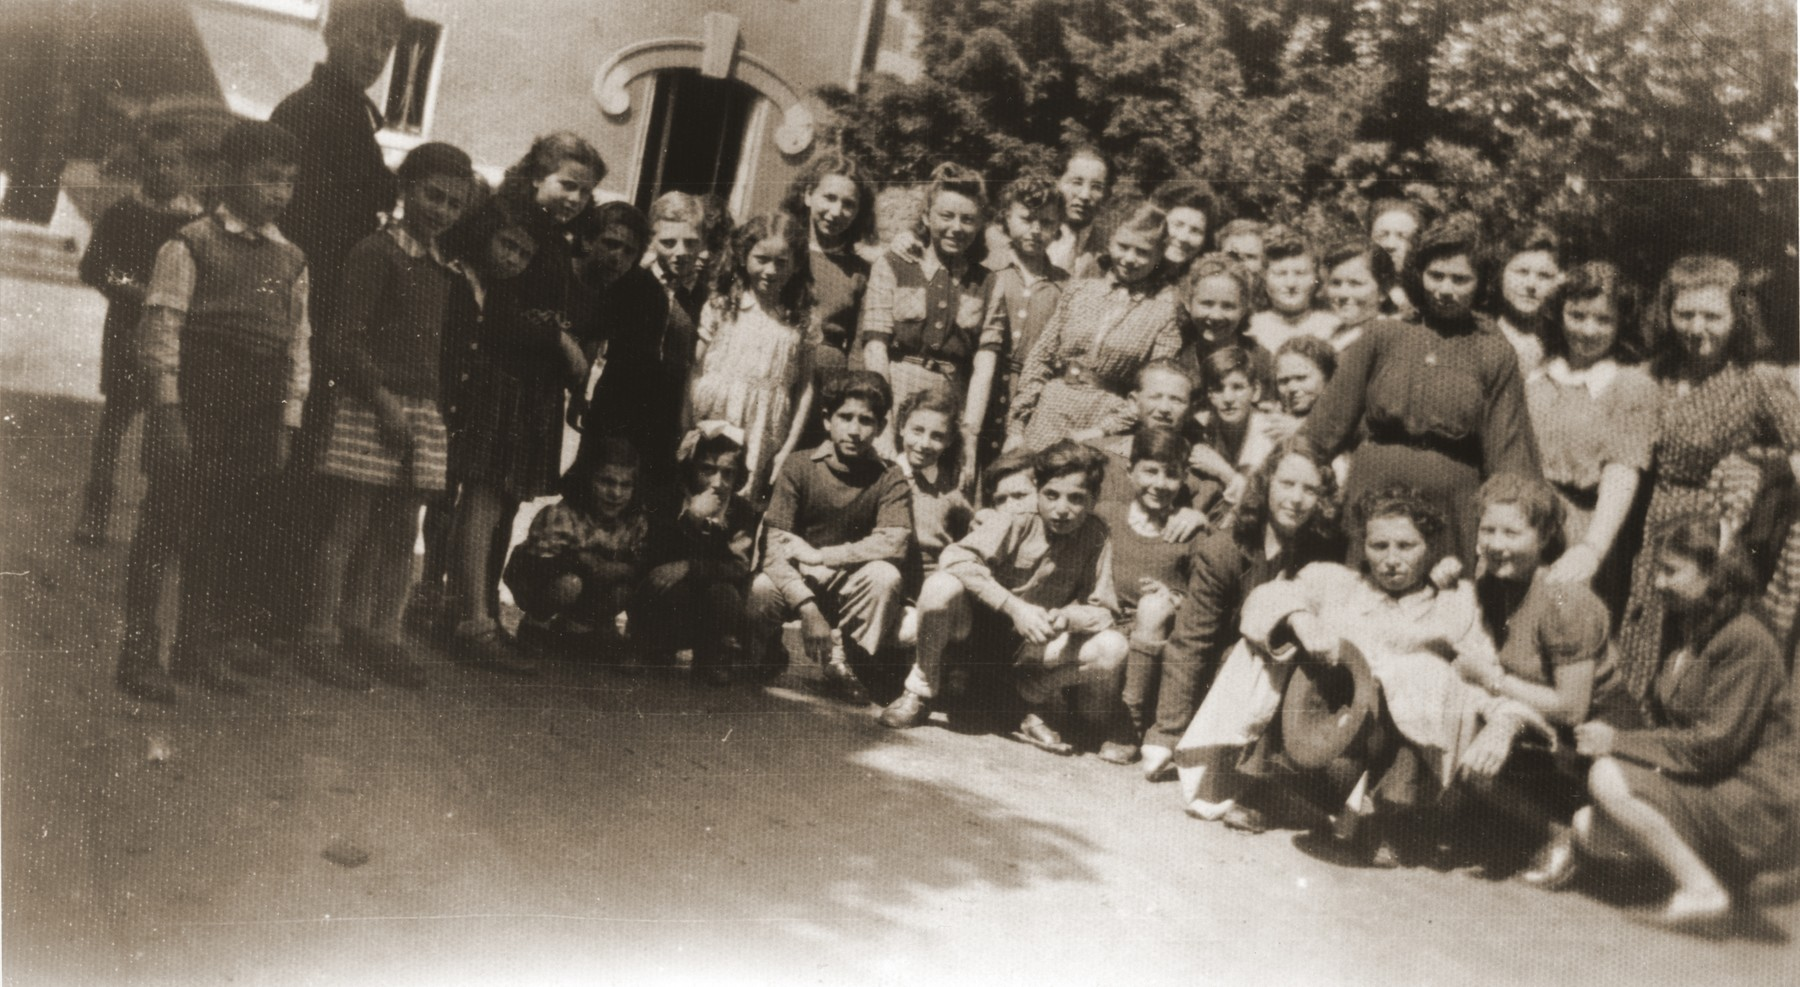 Group portrait of members of the orphans transport during their sojourn in France on their way to England.  Among those pictured are S. Lampert, Mermelstein, E. Zelovic, Vermes, Markovits, Weinberger, M. Lampert, W. Zelovic, Weiss, Davidovic, Lebovic, Slomovic, Birnbaum, Zelikovic and Bohm.